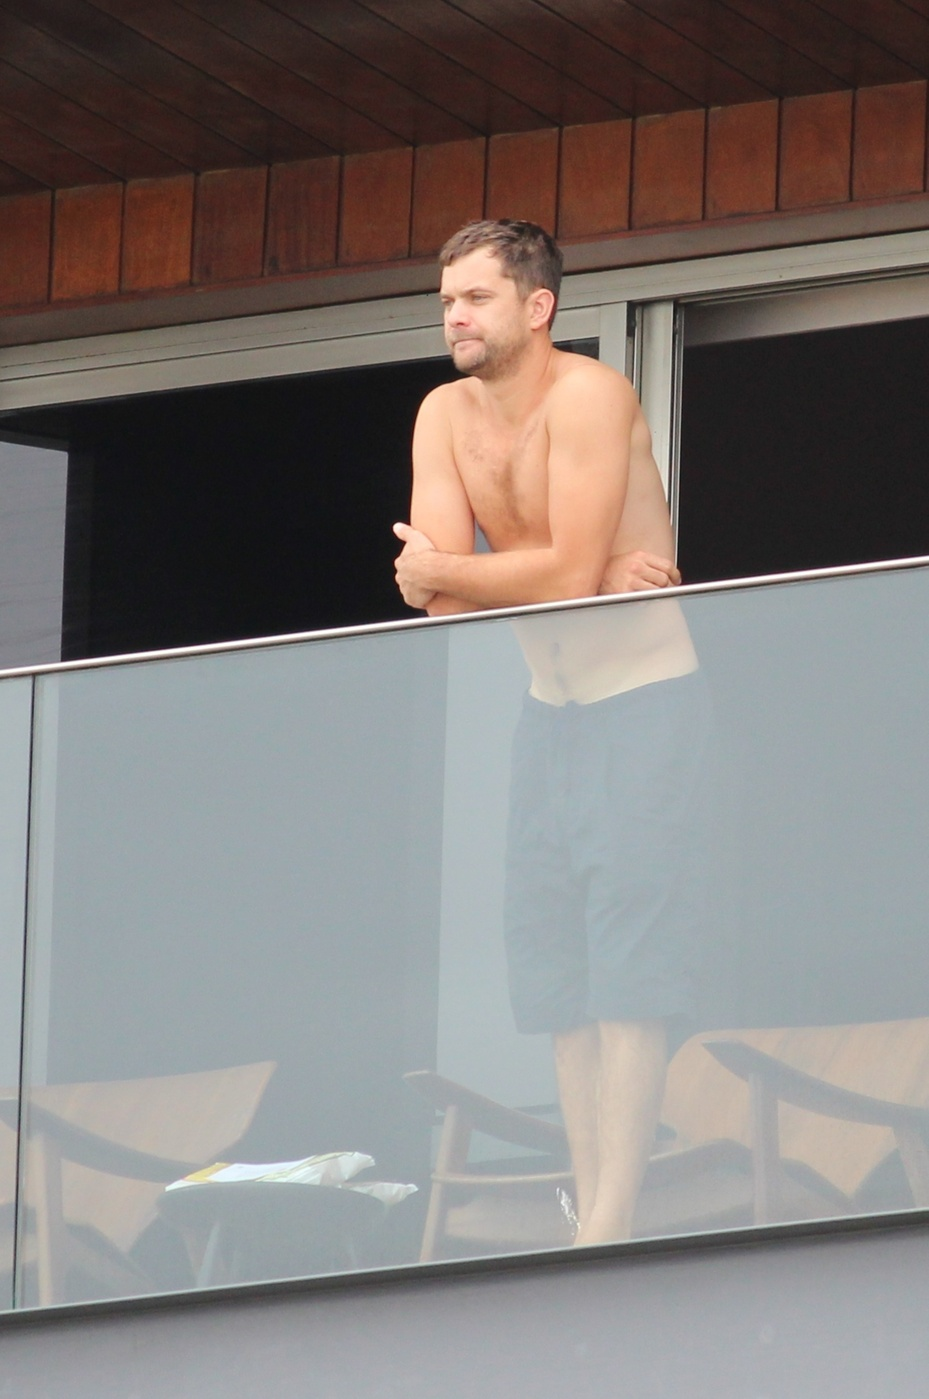 Joshua Jackson seen shirtless and in a very relaxed mood at the balcony of thier hotel in Rio de Janeiro